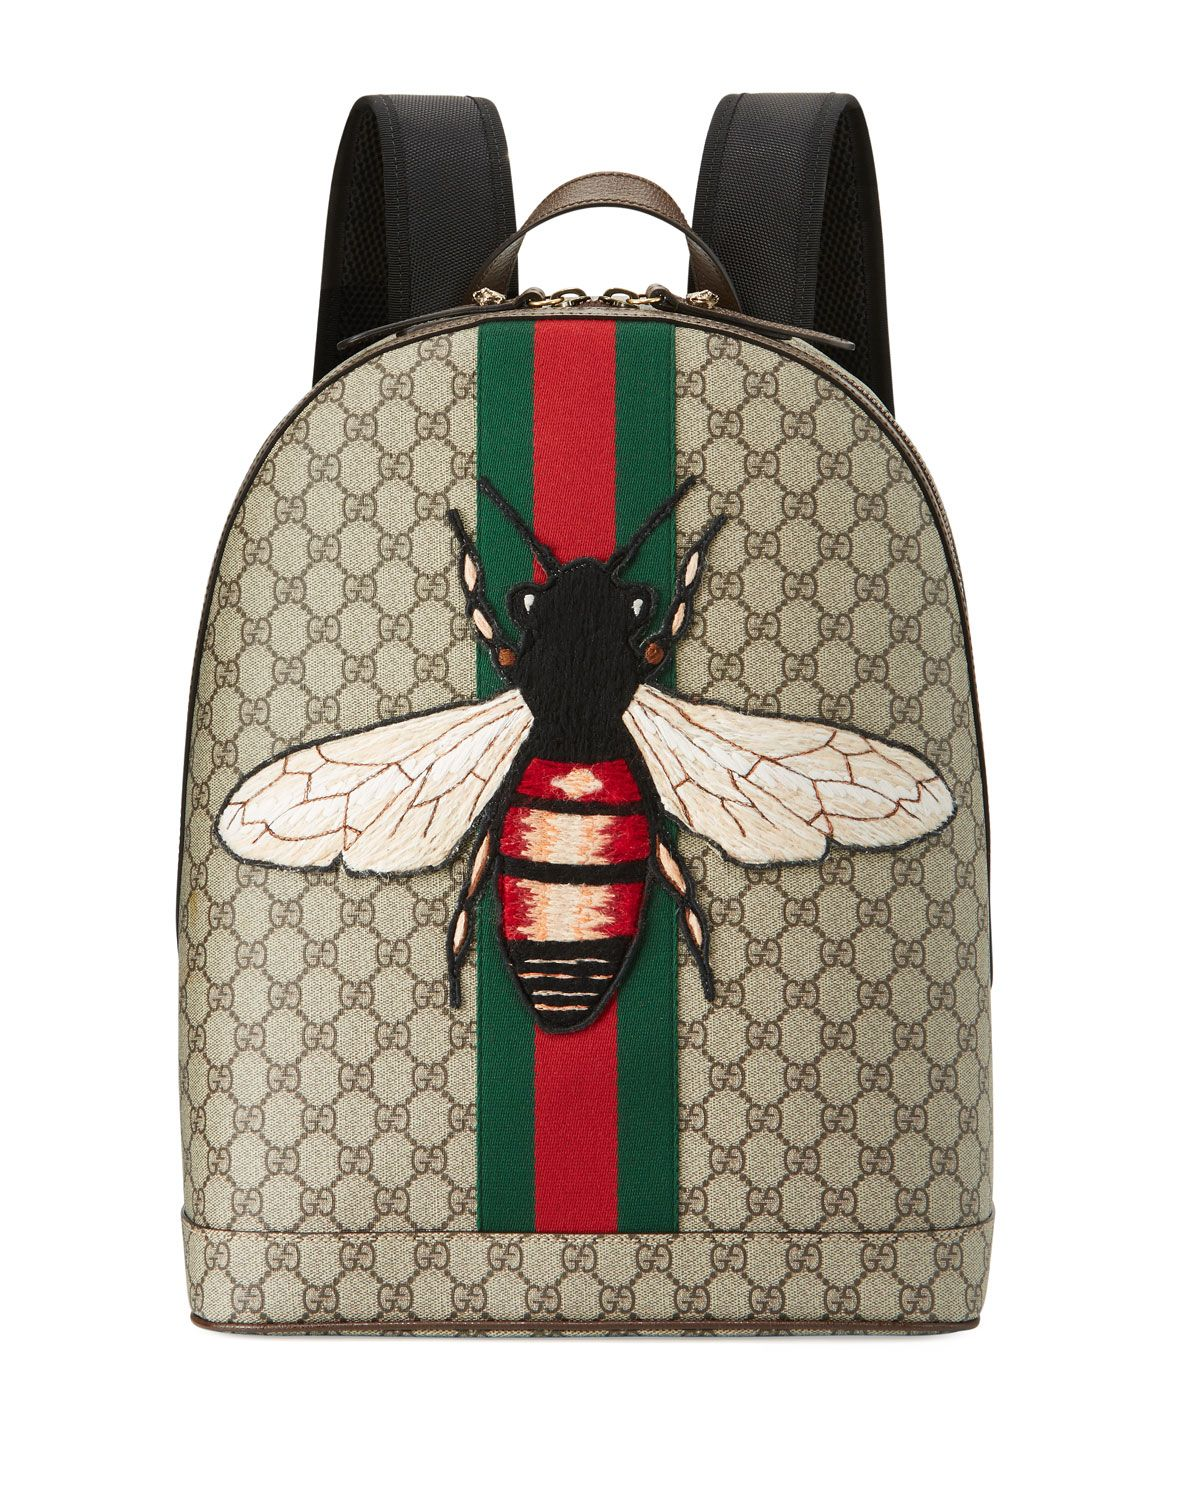 7885504a2458 Signature green red green web stripe down center front. Brown leather  details